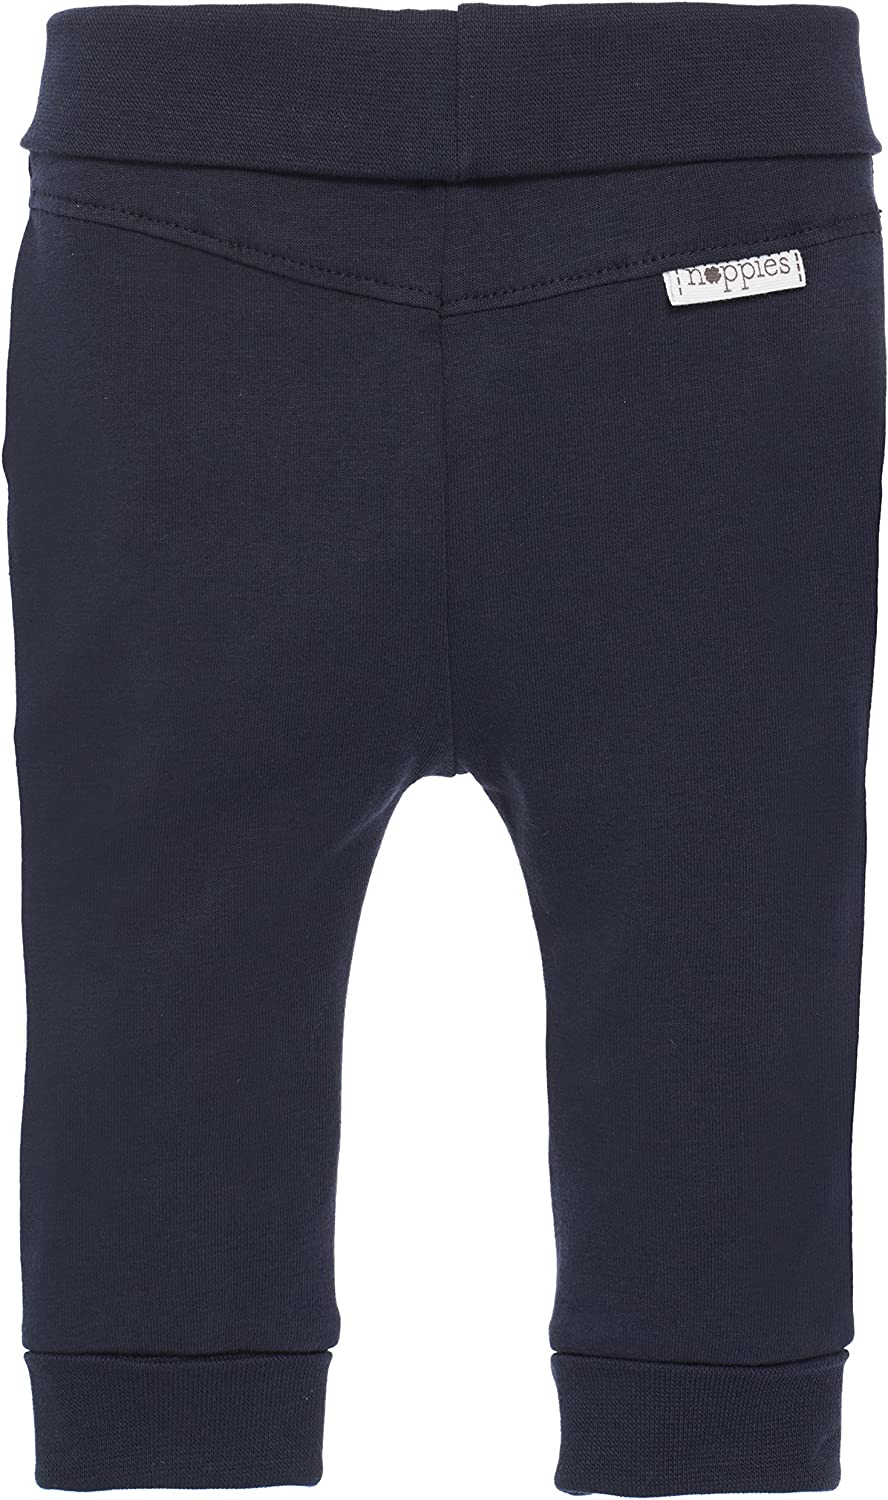 Noppies Baby and Kids Unisex Trousers Humpie